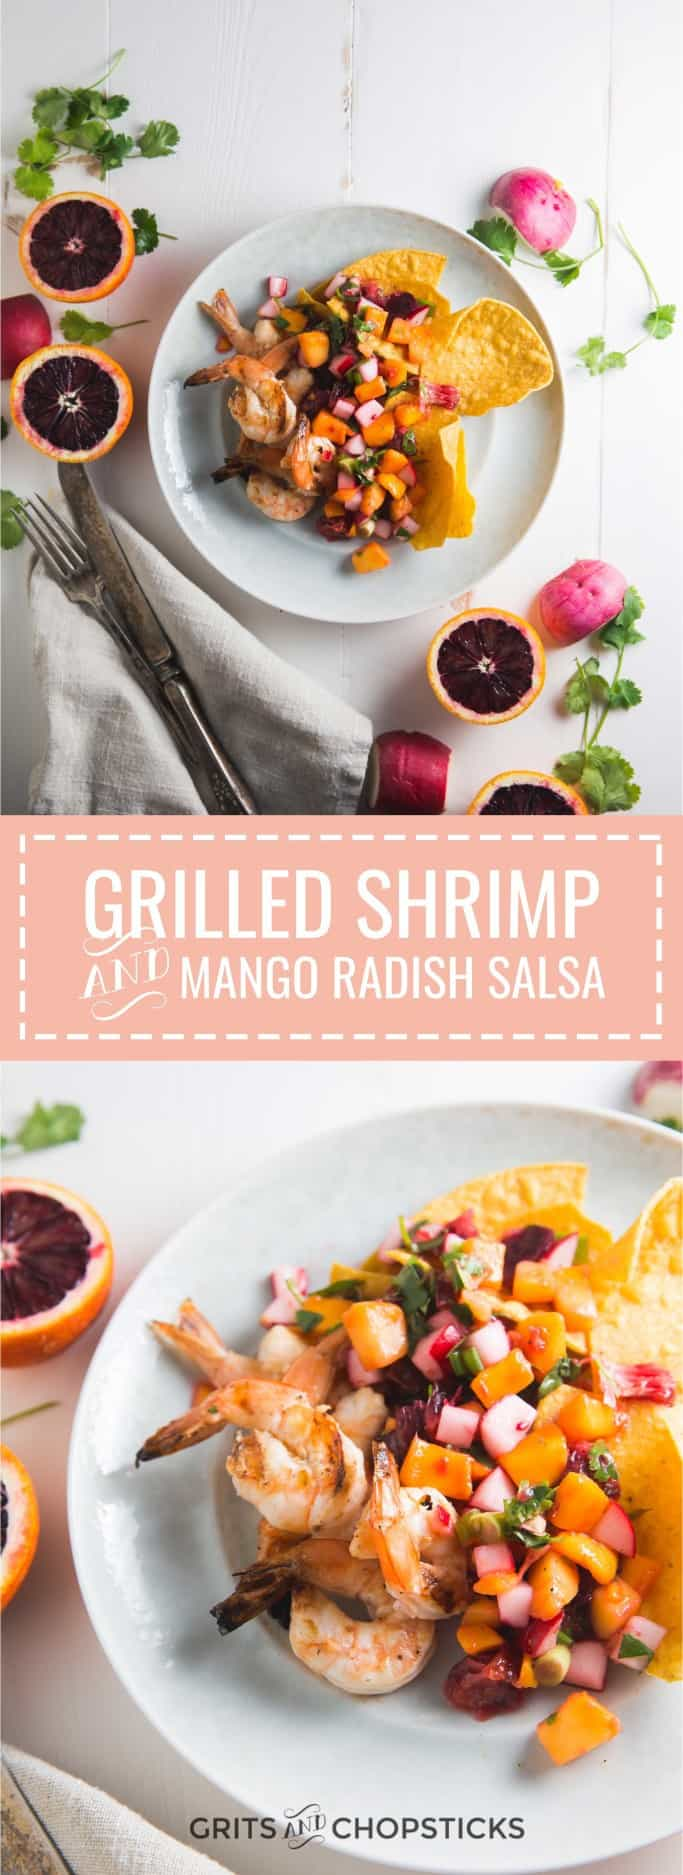 This recipe grilled shrimp with mango radish salsa and tortilla chips is a perfect meal to celebrate the arrival of spring